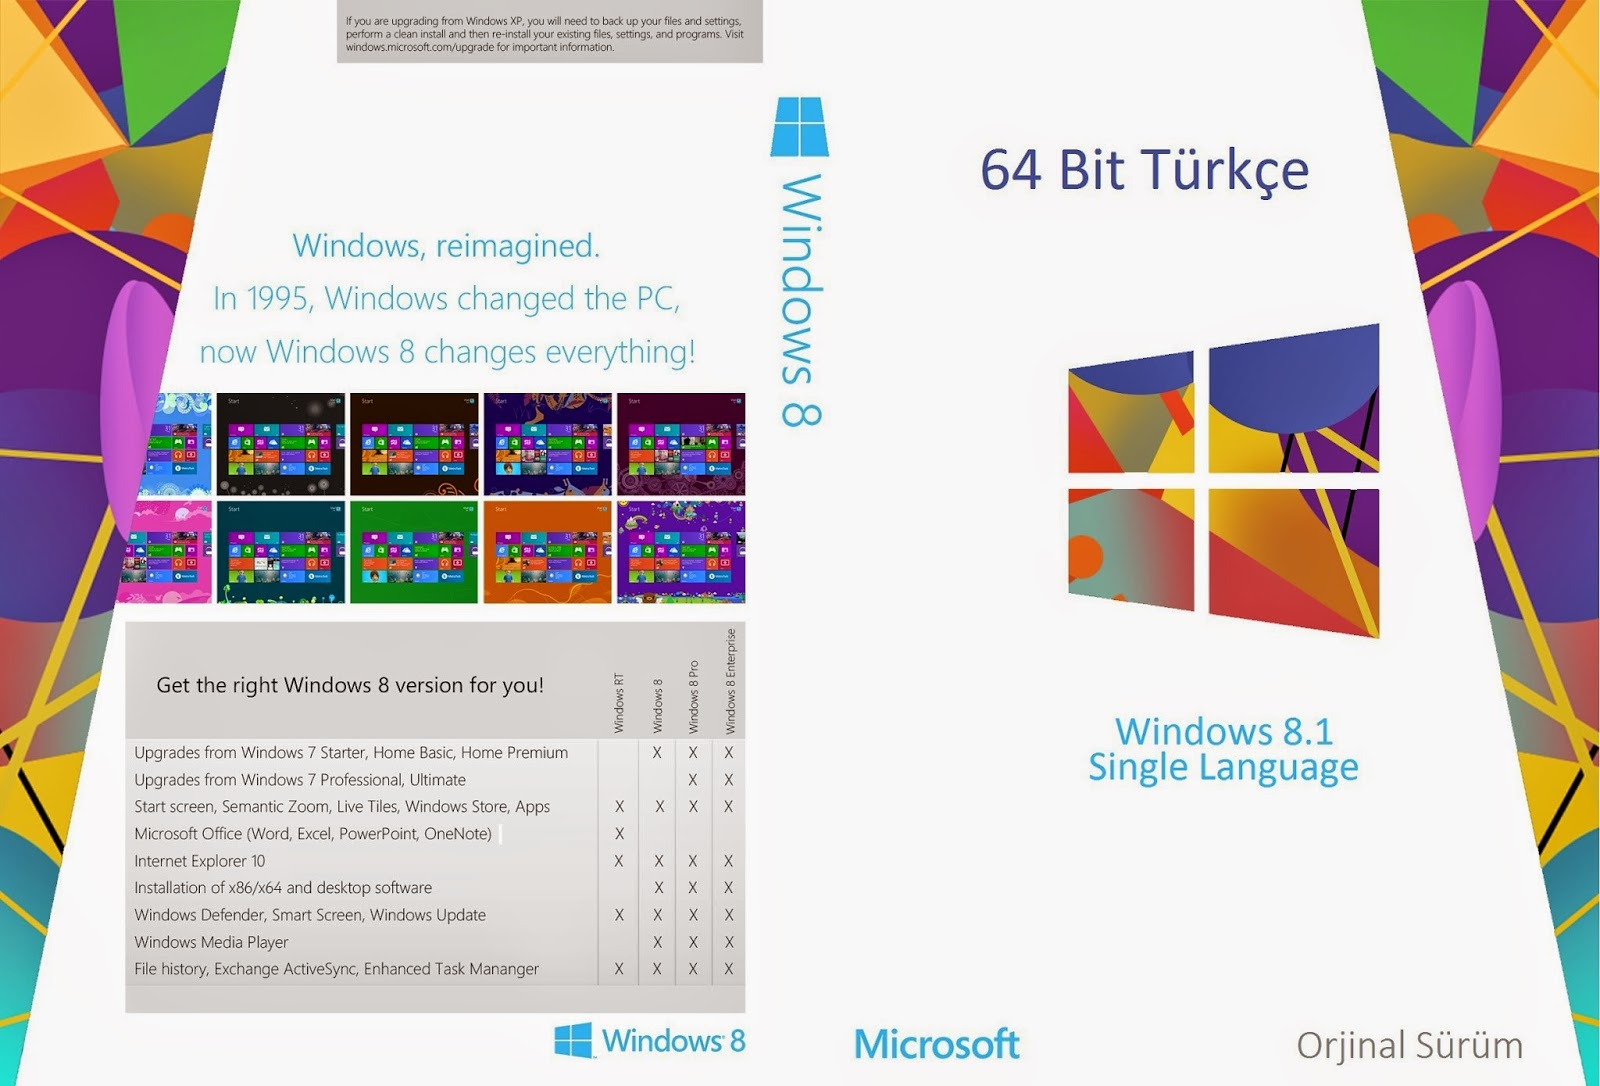 windows 8 torrentle indir 32 bit türkçe